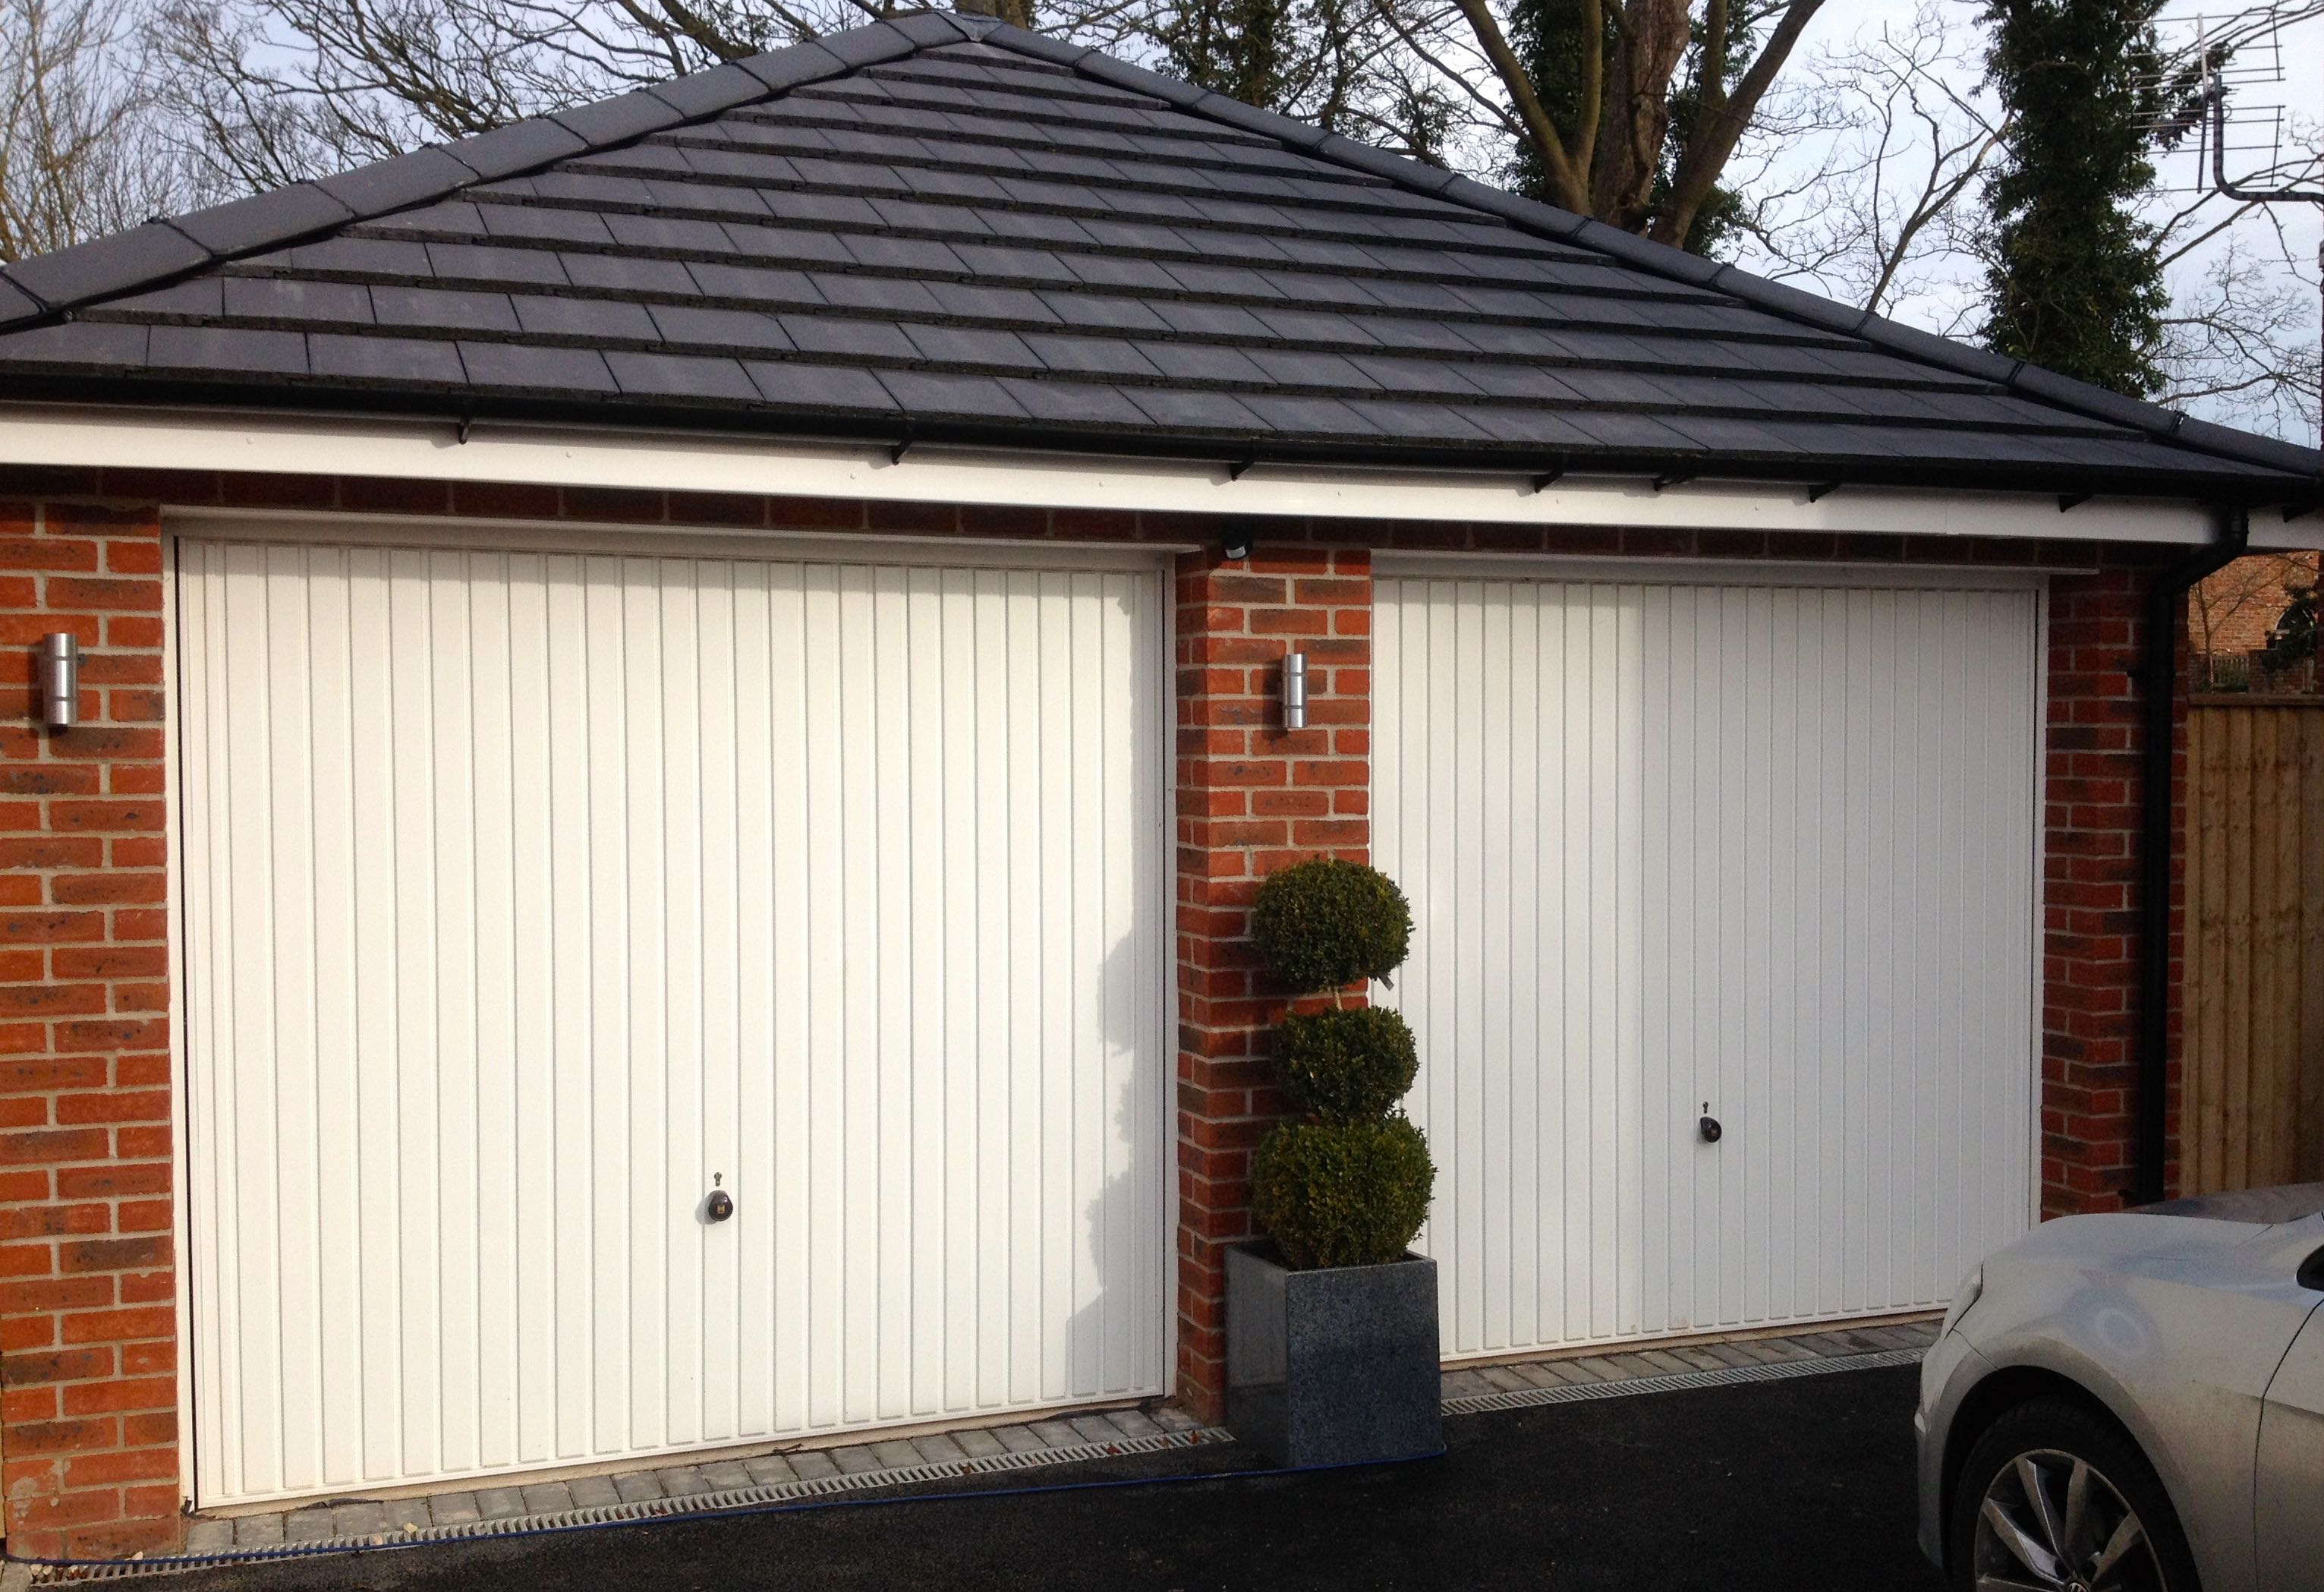 2097 #774128 Garage Doors Shropshire Shropshire Garage Doors Prices wallpaper Garage Doors In My Area 37453062